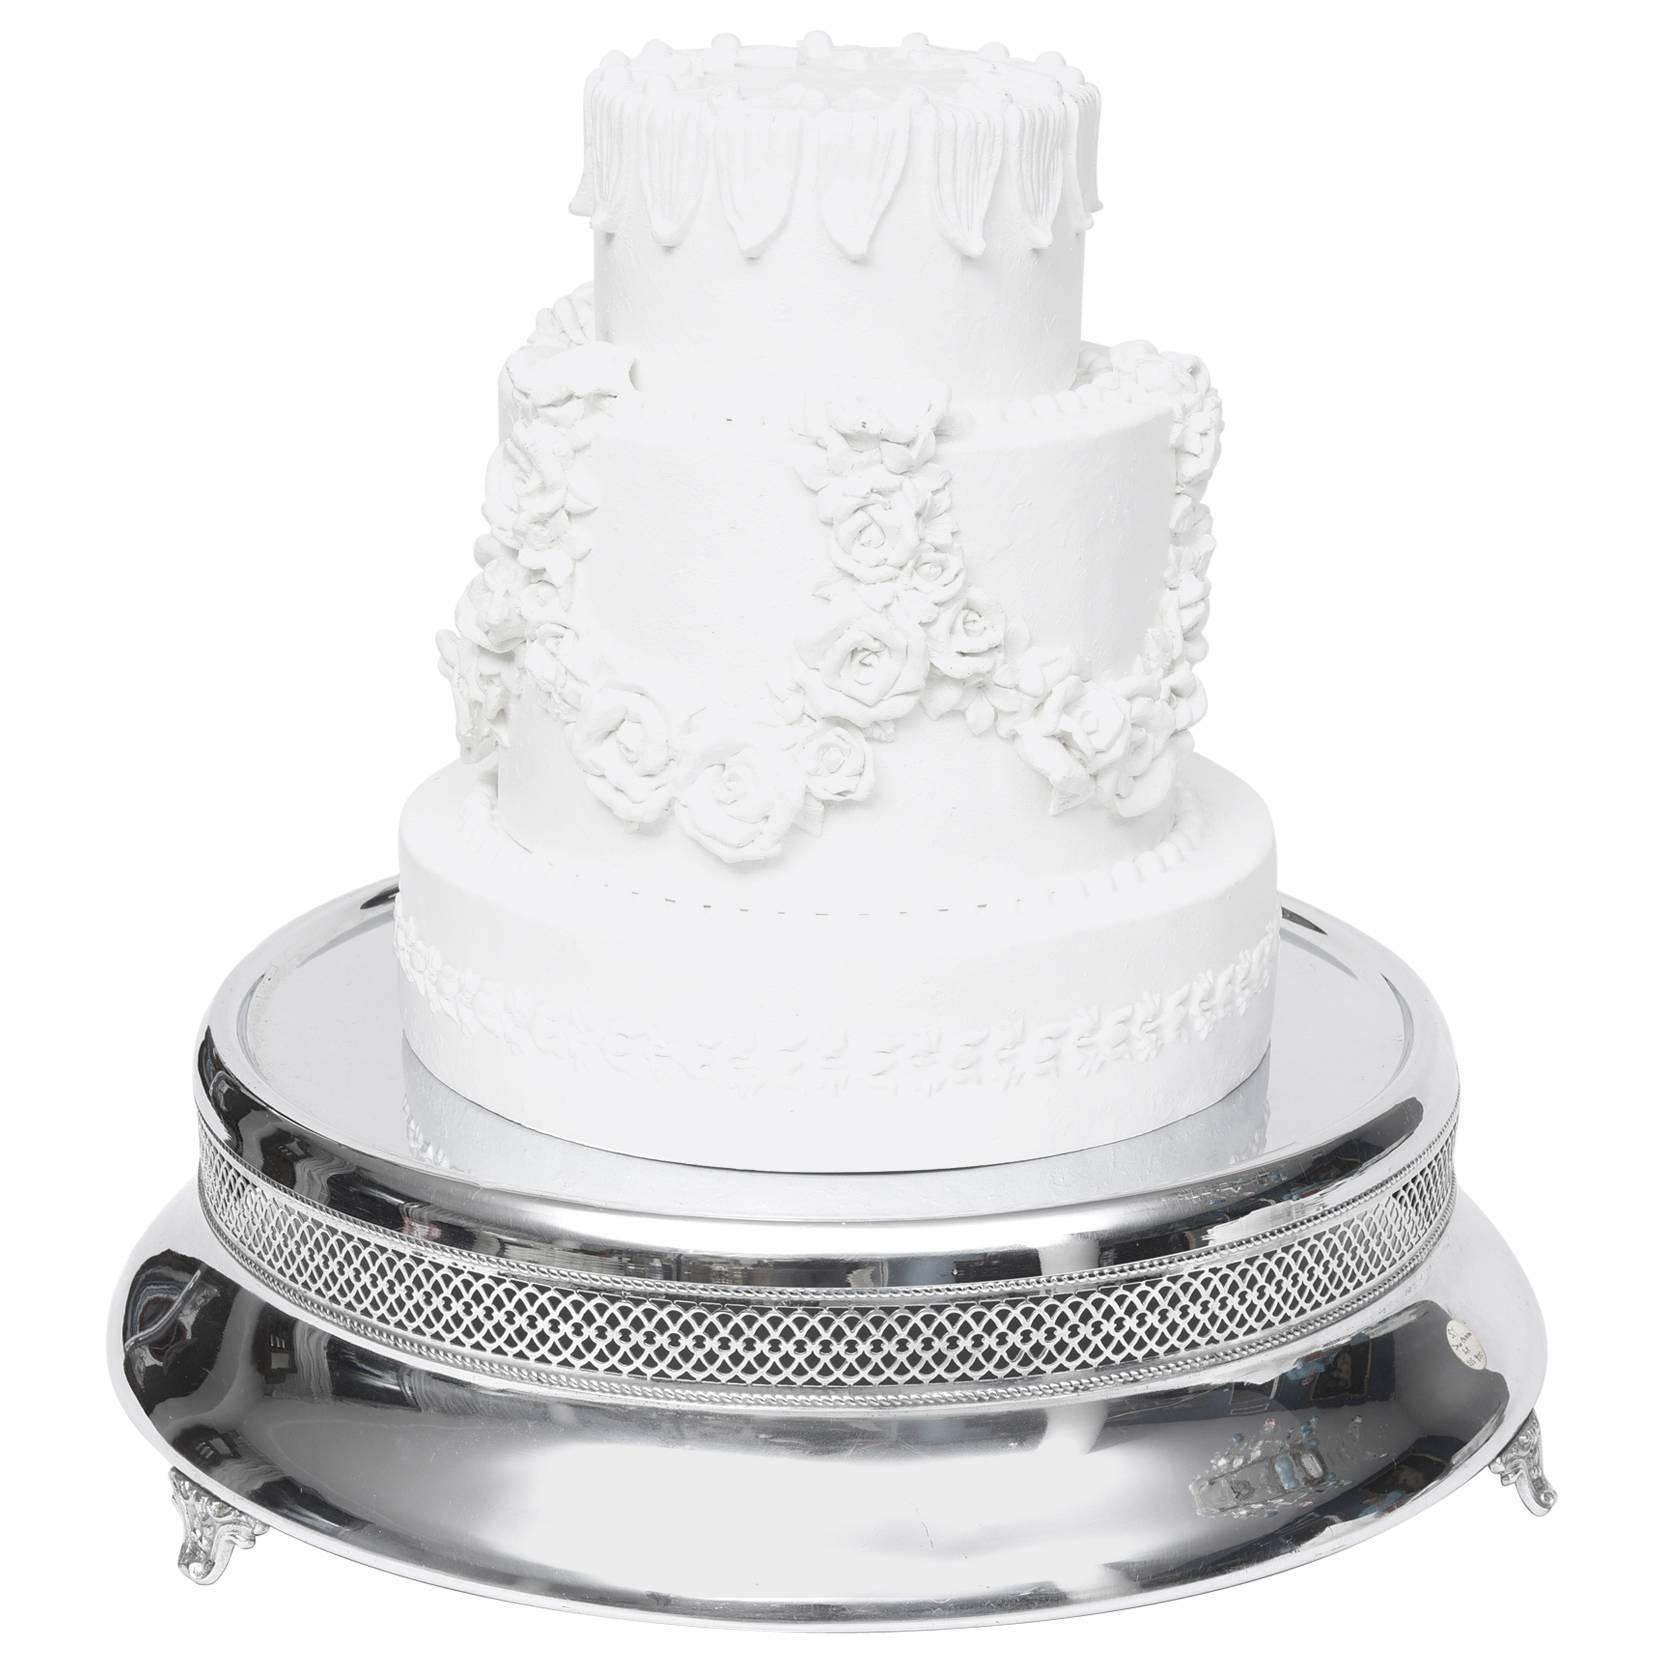 Antique Victorian Silver Plate Wedding Cake Stand/Plateau ...